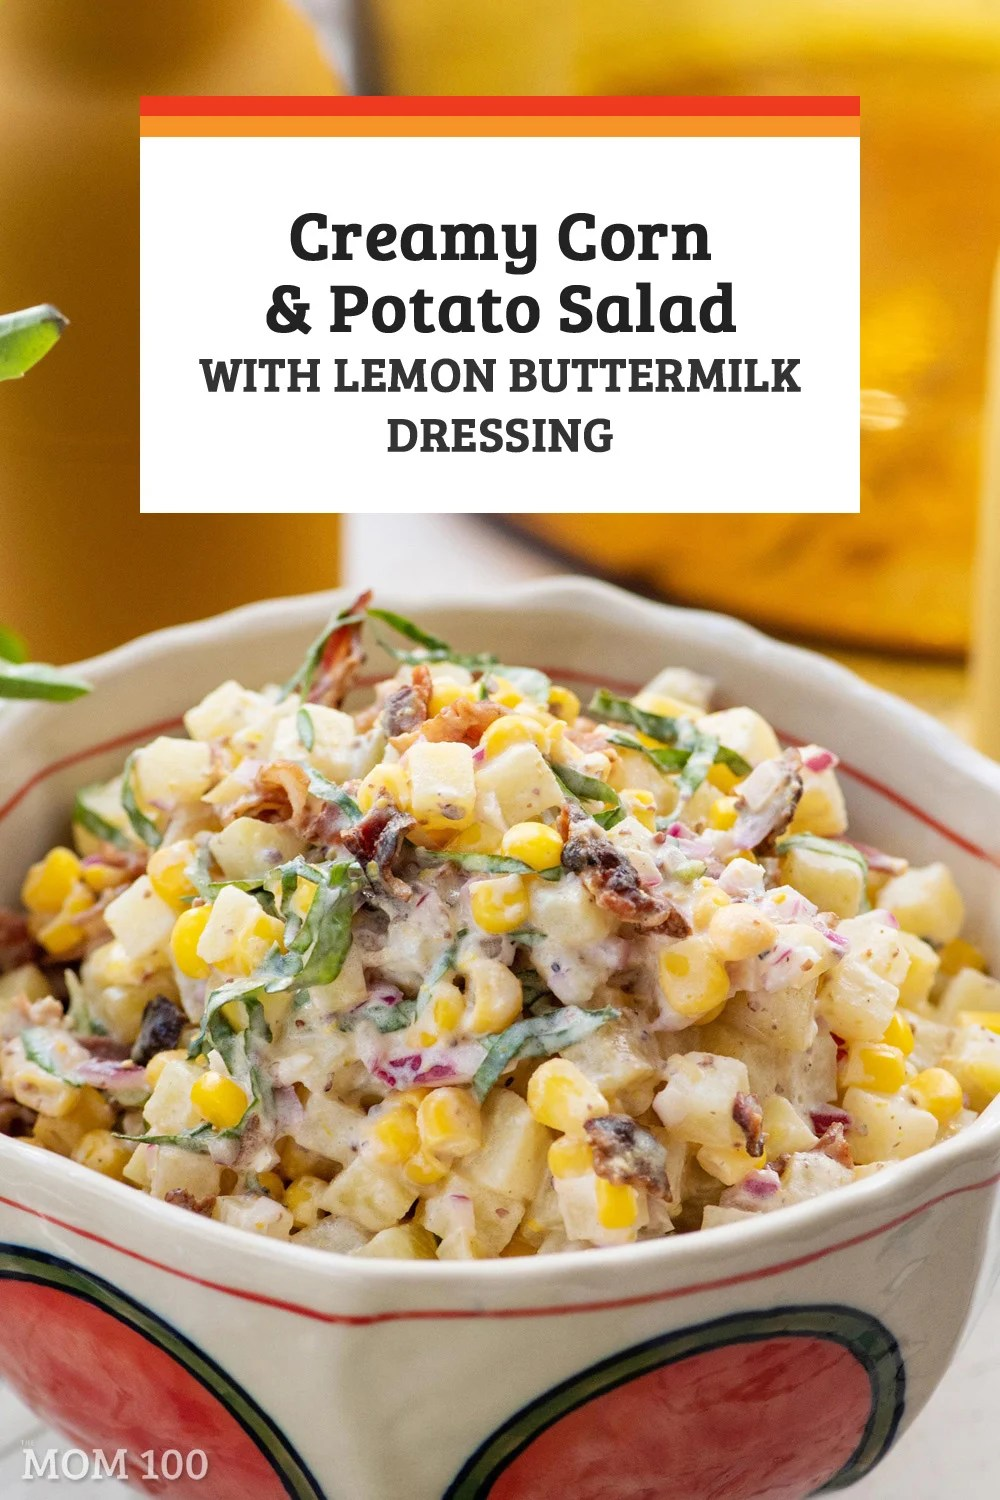 Creamy Corn and Potato Salad with Lemon Buttermilk Dressing: The creaminess of the potatoes is punctuated by the pop of the crispy corn and crumbled bacon.